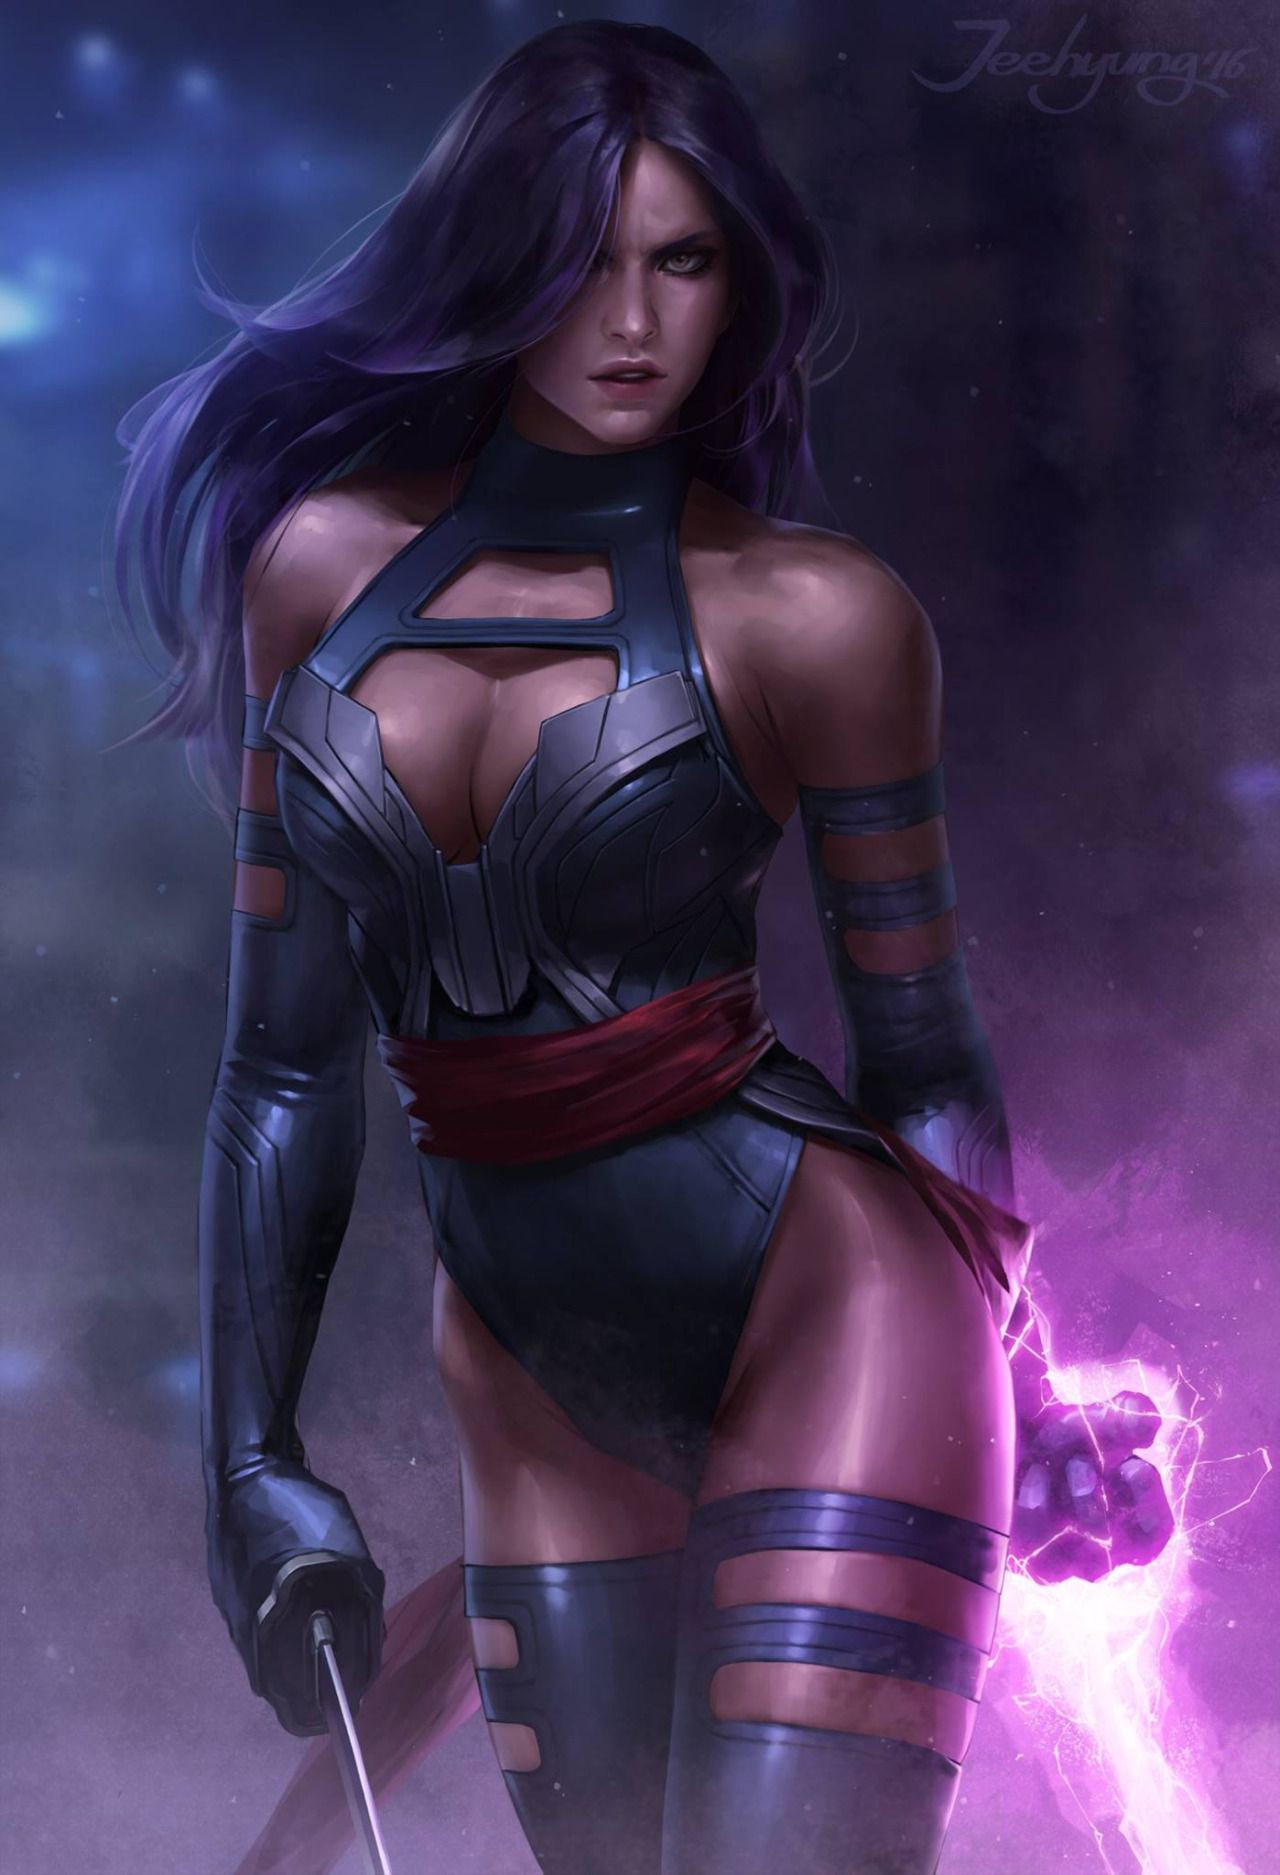 Erotic marvel art